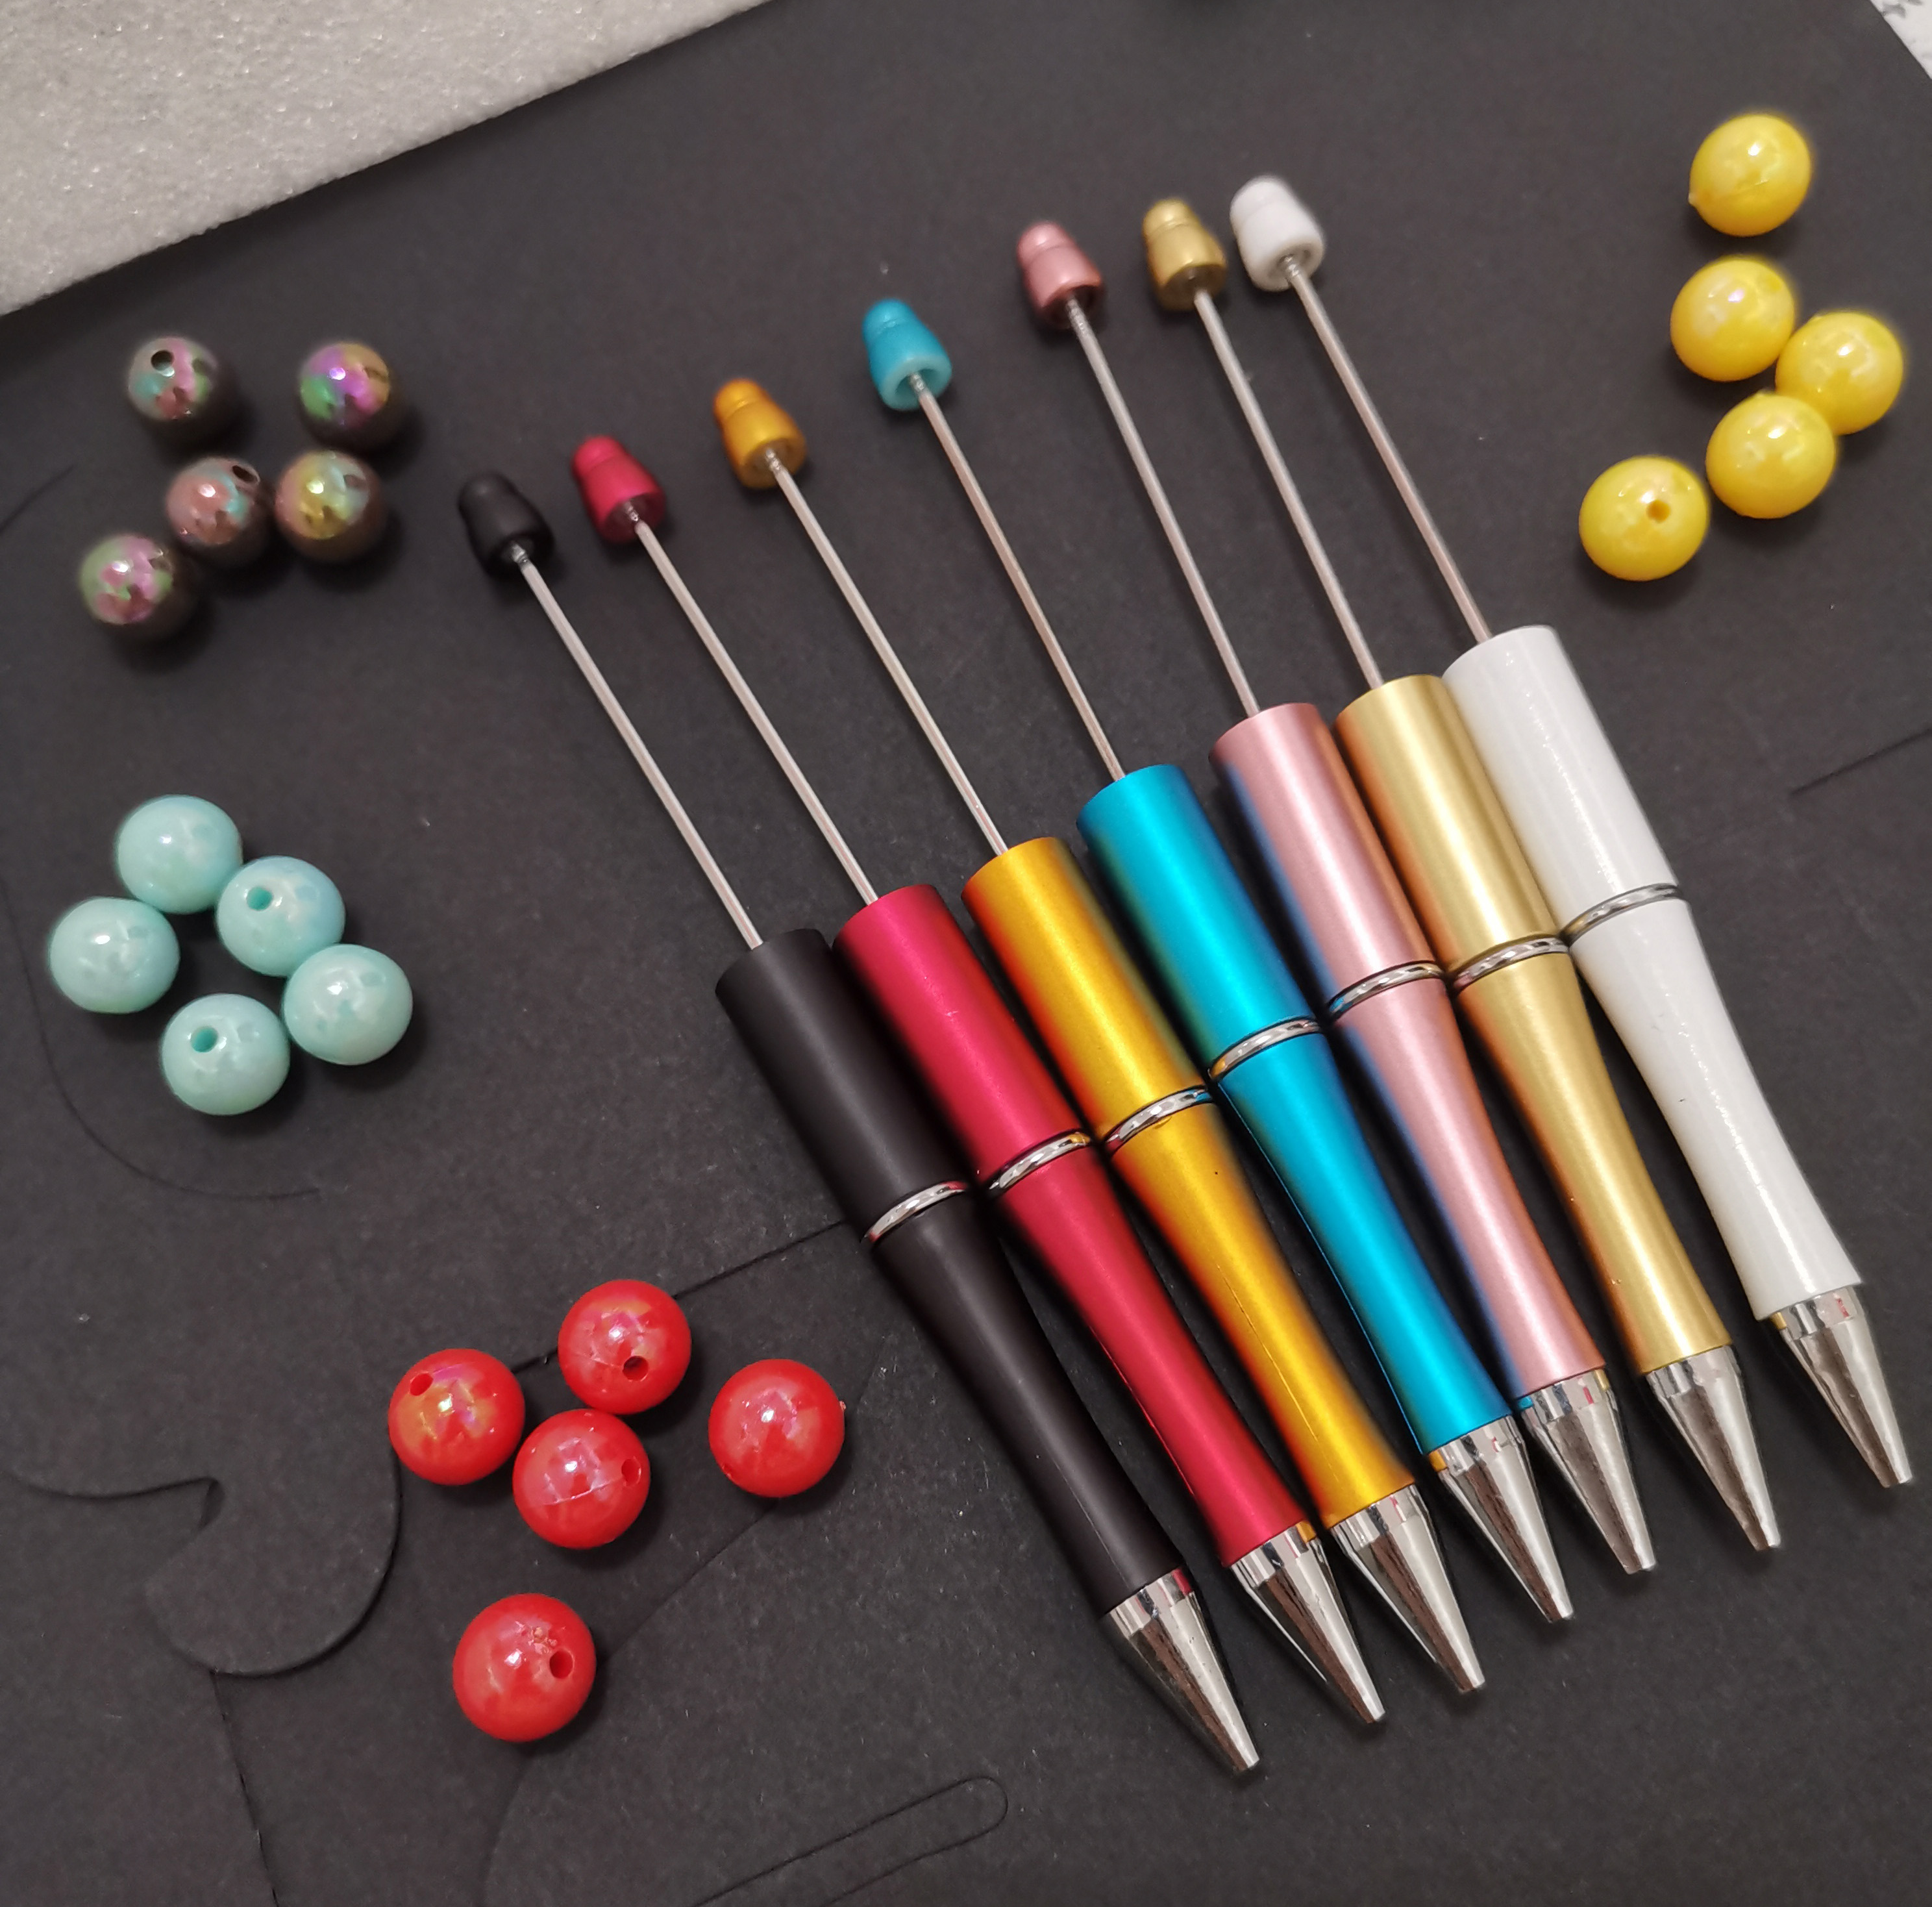 10pcs/lot Plastic Beadable Pen Bead Pens Ballpoint Pen Gift Ball Pen Kidsparty Personalized Gift Wedding Gift For Guests